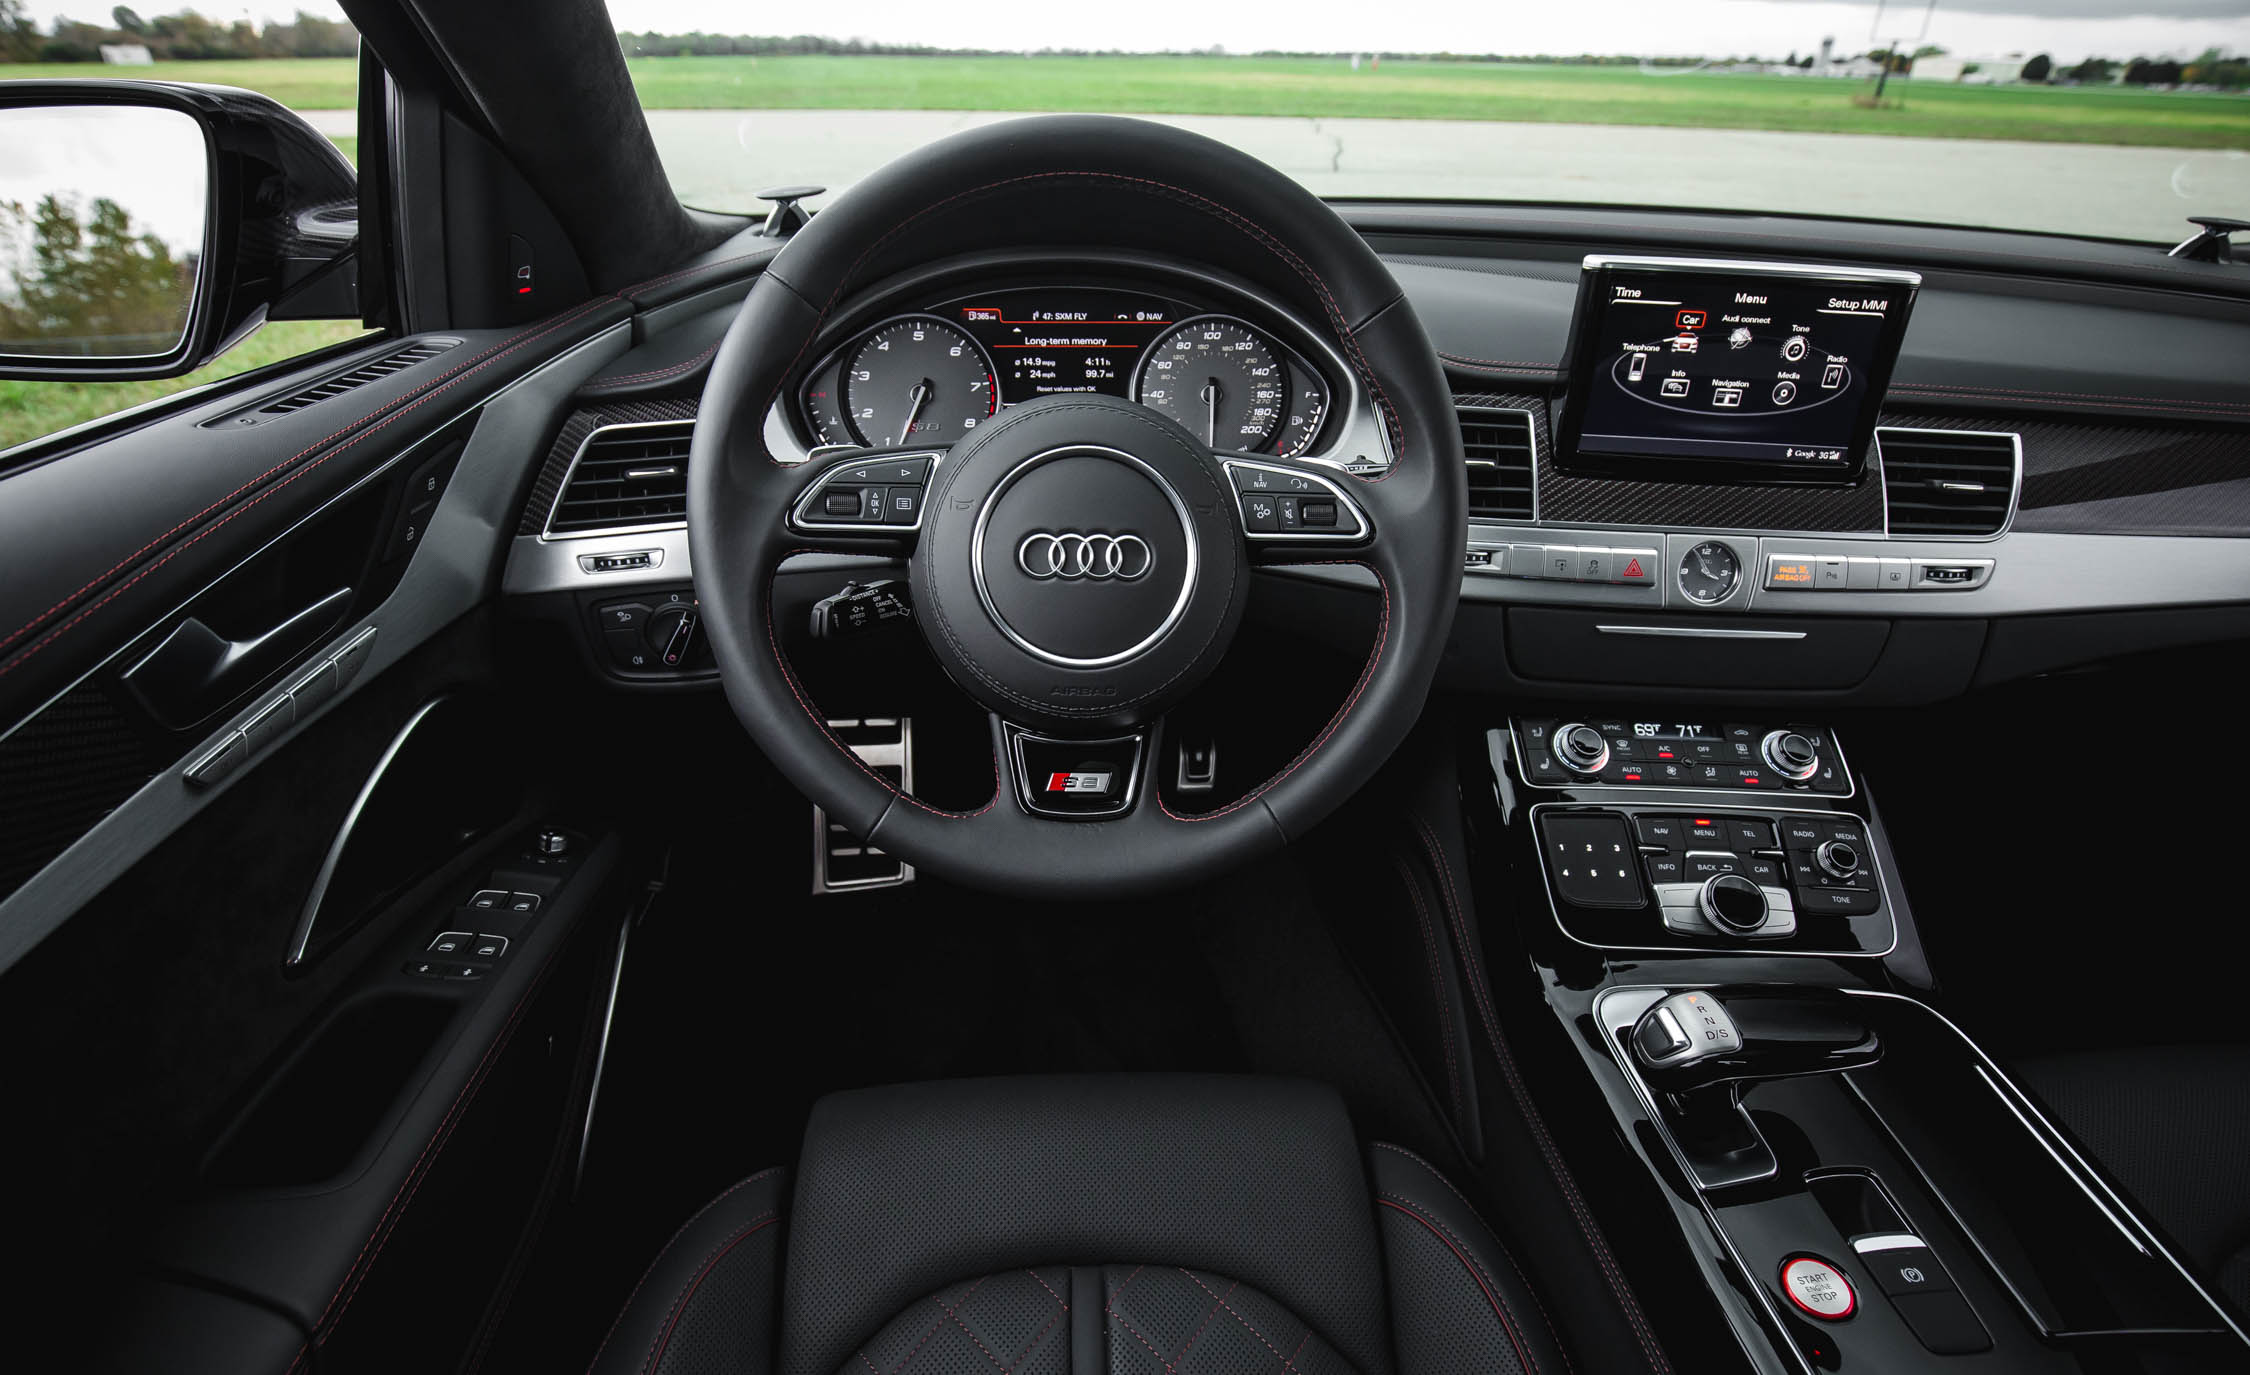 2017 Audi S8 Plus Interior Cockpit Steering And Dash (Photo 14 of 36)